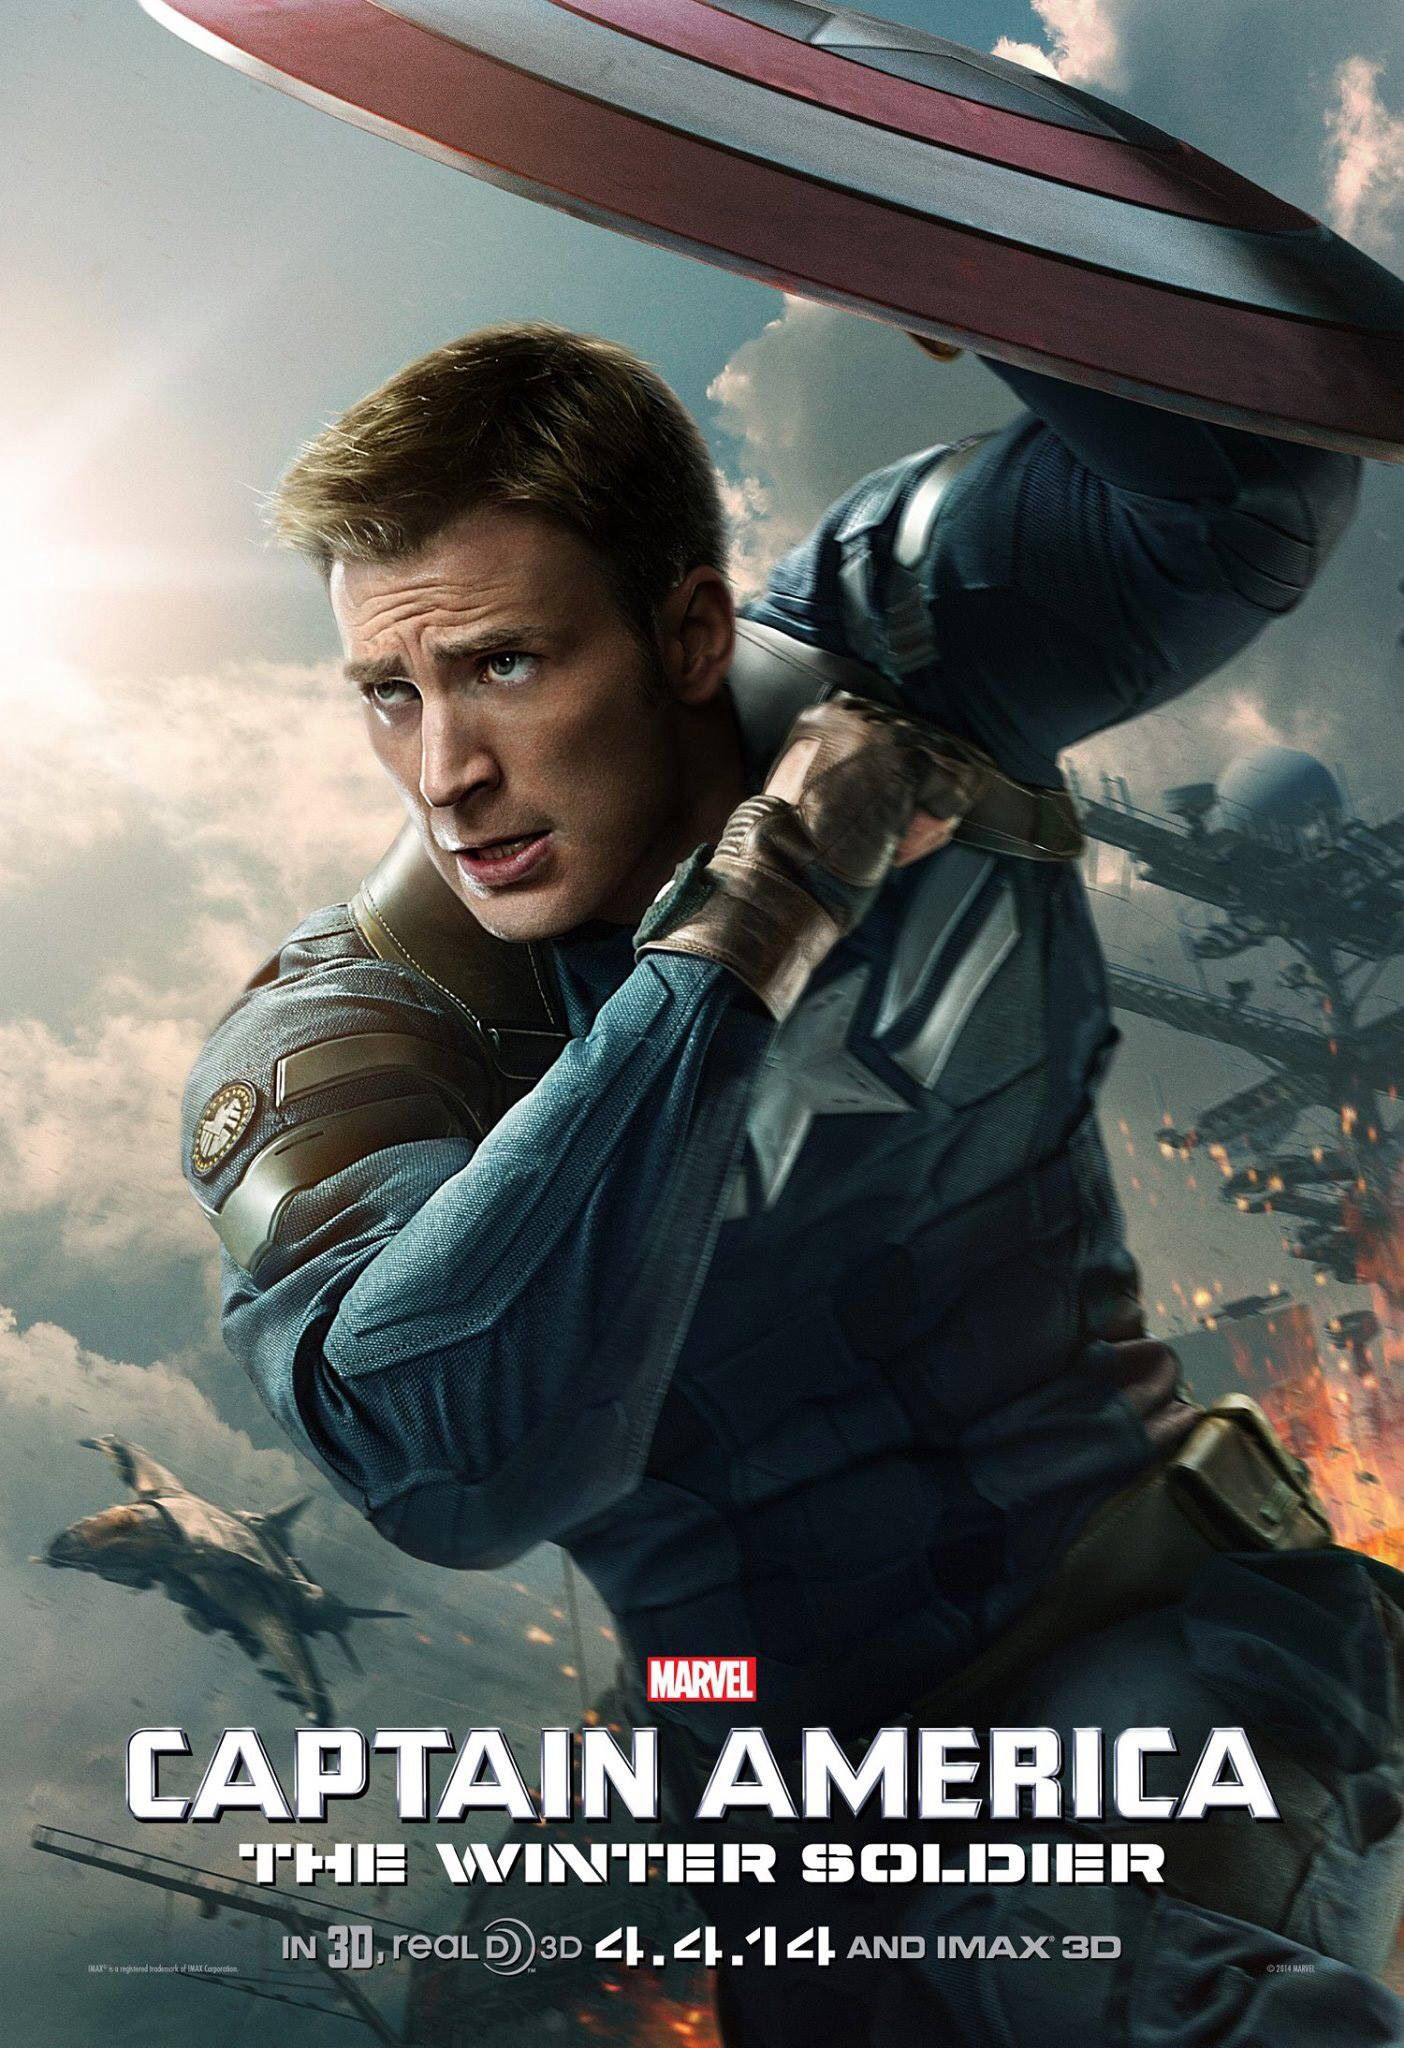 Pin By Fanboy Fun On Awesome Stuff Captain America Movie Winter Soldier Movie Captain America Winter Soldier